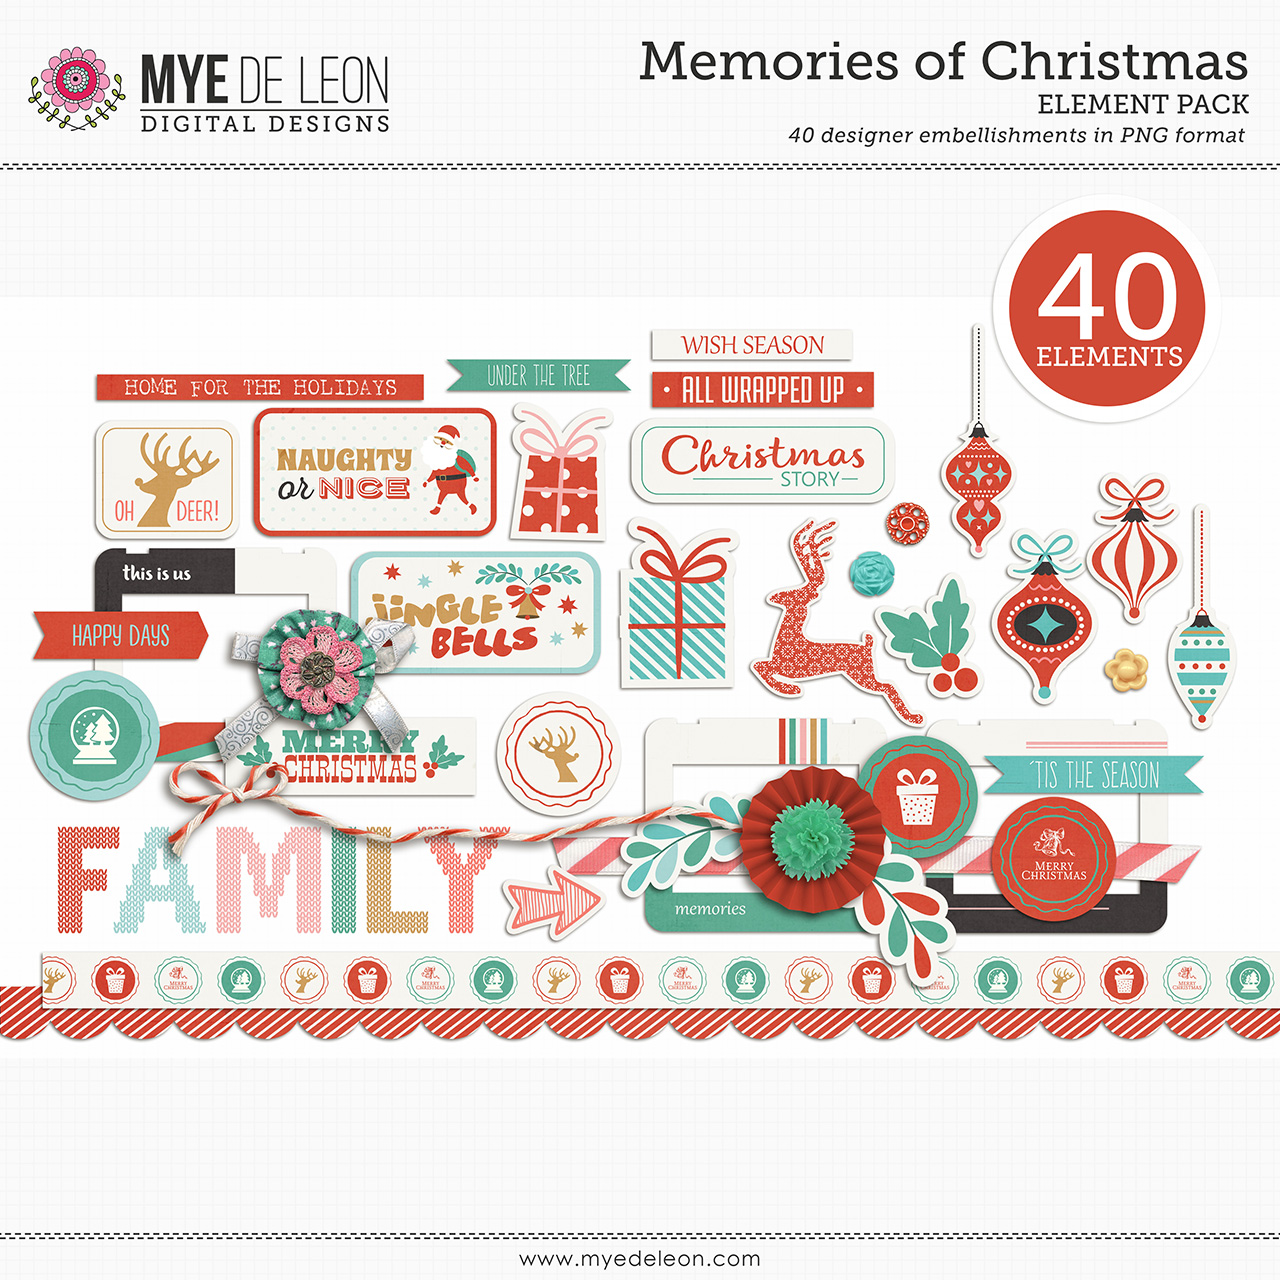 Memories of Christmas | Complete Collection